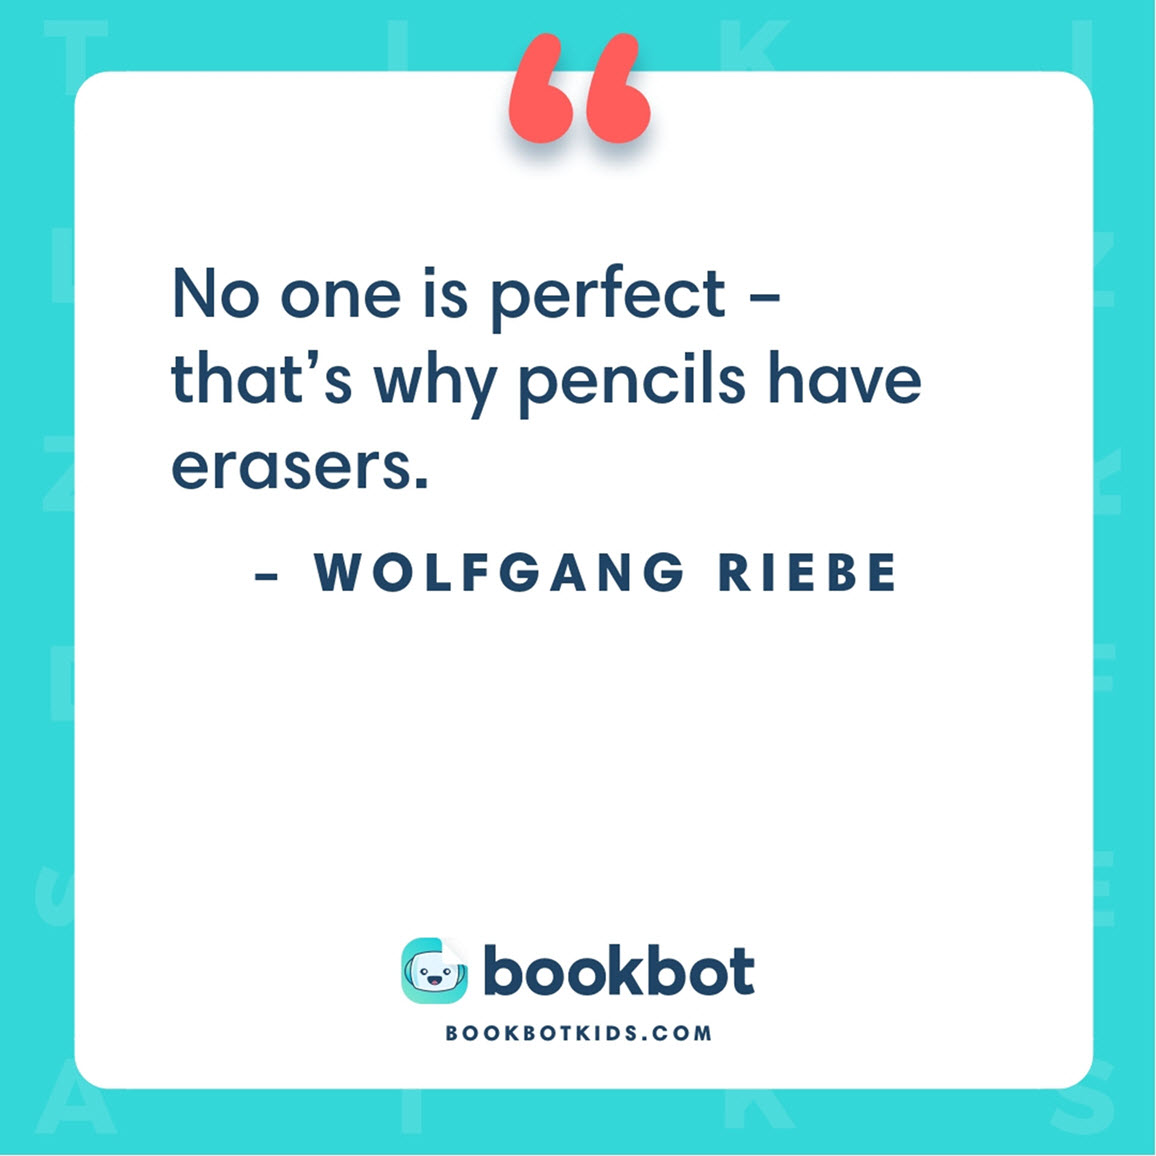 No one is perfect – that's why pencils have erasers. – Wolfgang Riebe